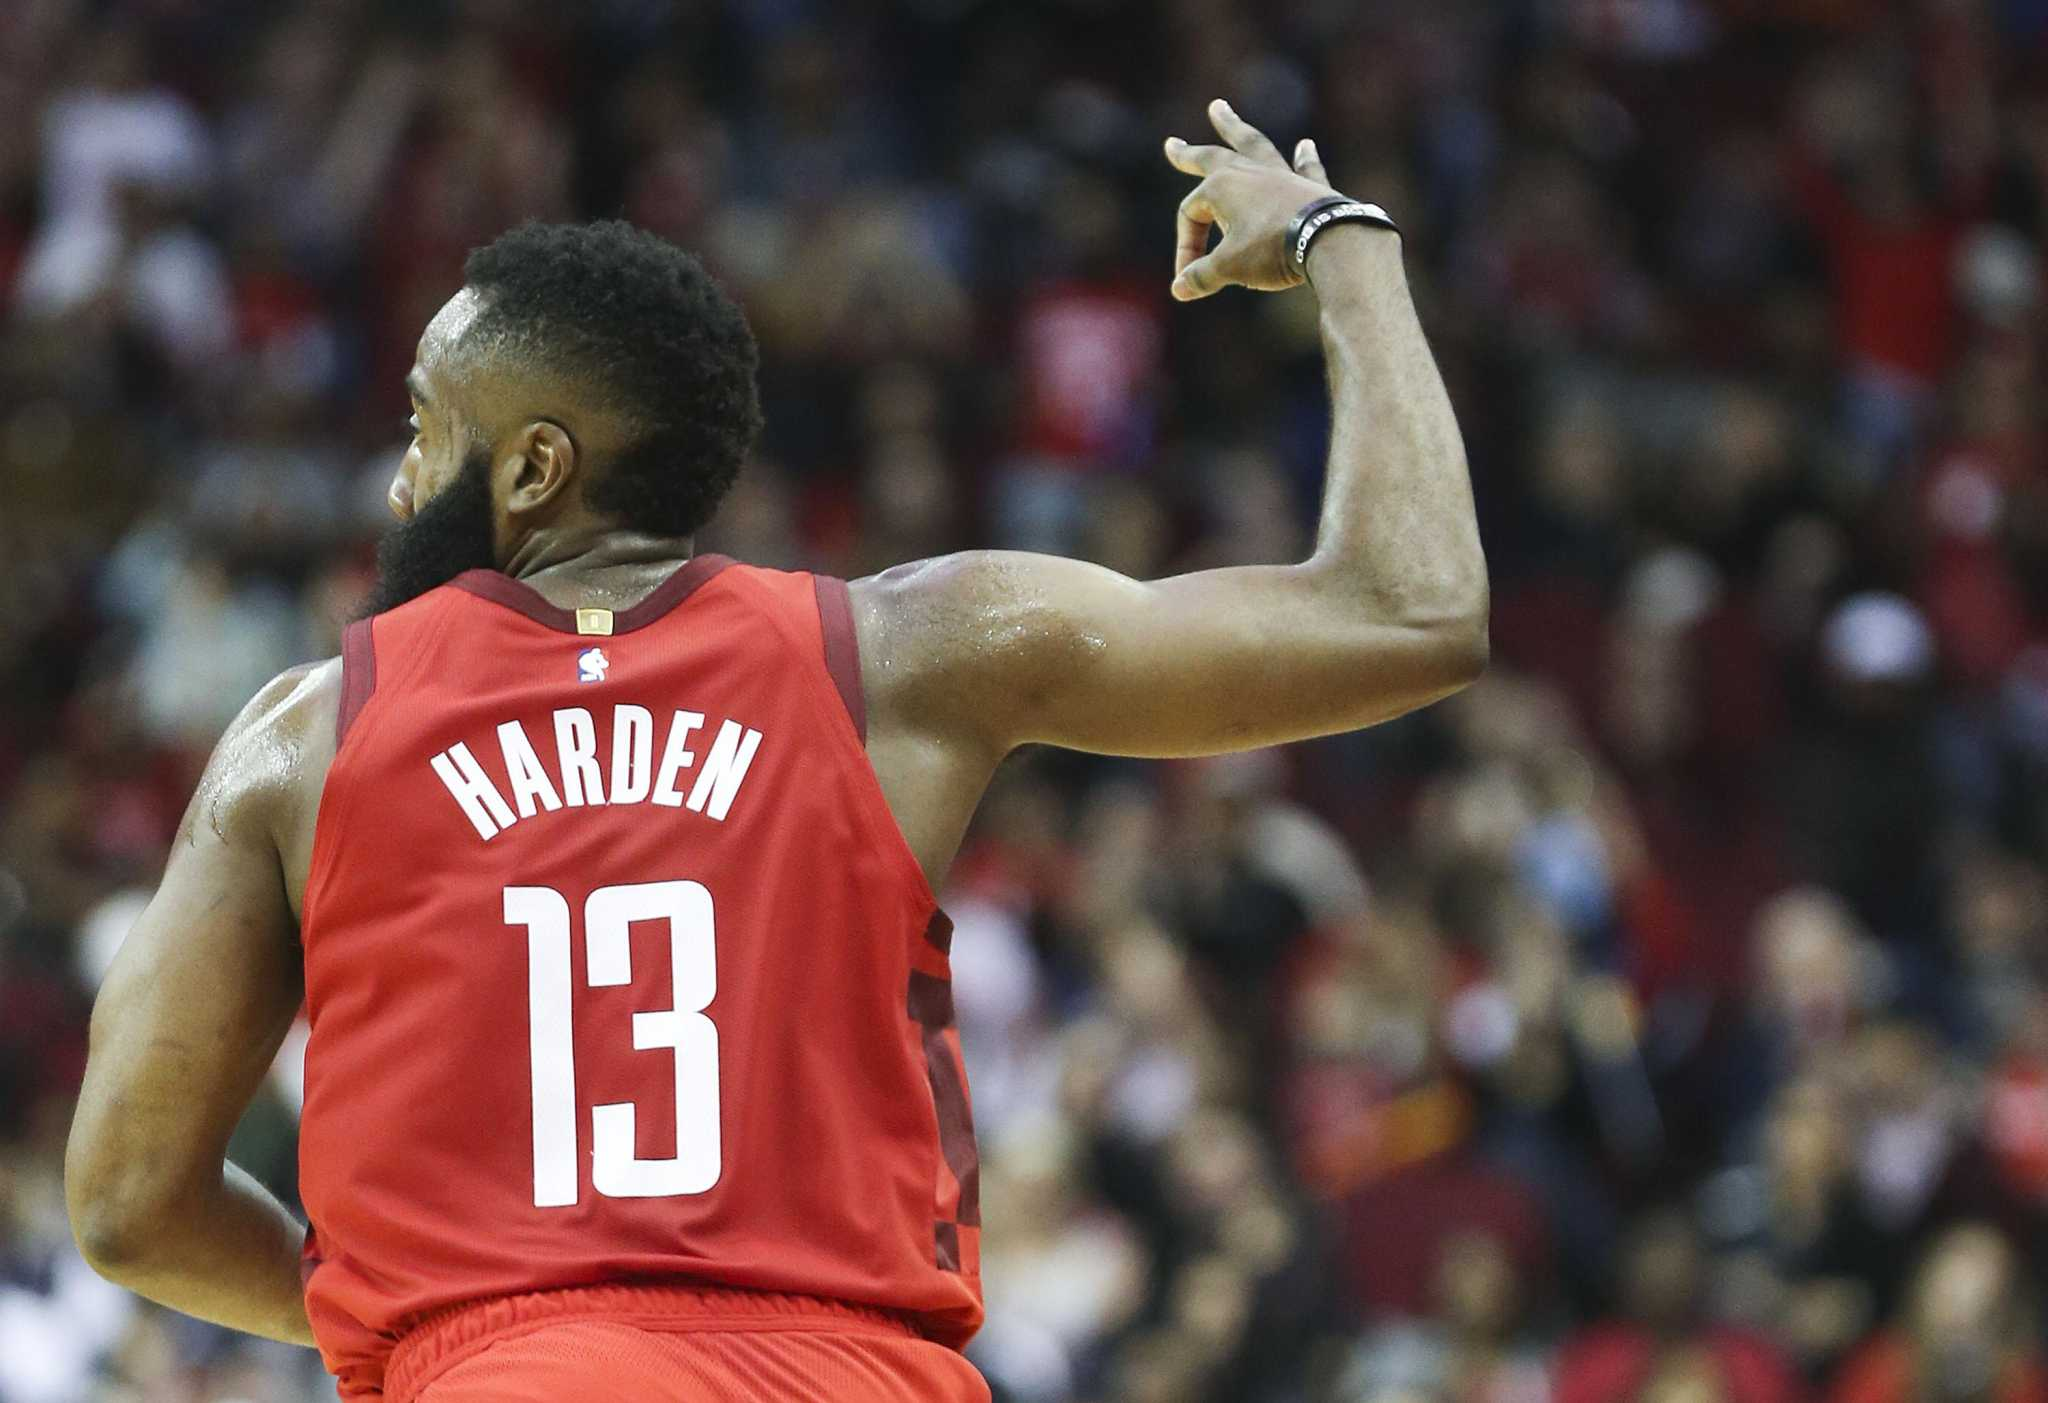 Rockets top Grizzlies as Harden puts up a 43-point triple-double -  HoustonChronicle.com 3a6284863